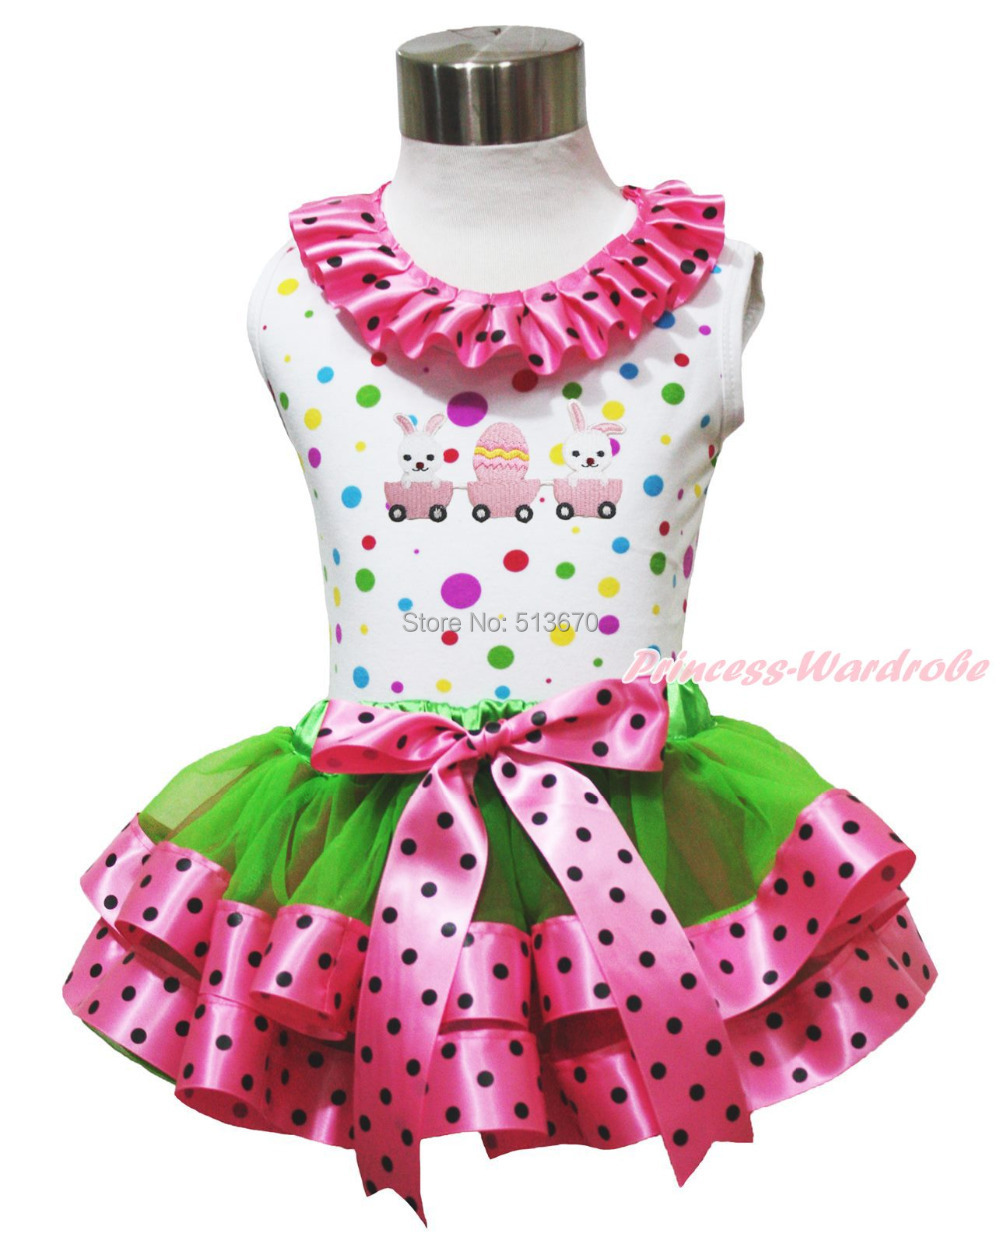 Easter Egg Bunny Rabbit Train White Rainbow Top Green Hot Pink Black Dots Bows Satin Trim Girl Skirt Outfit 1-8Y MAPSA0511 easter sparkle 3rd hot pink white dot top rainbow stripe skirt set 1 8y mamh170